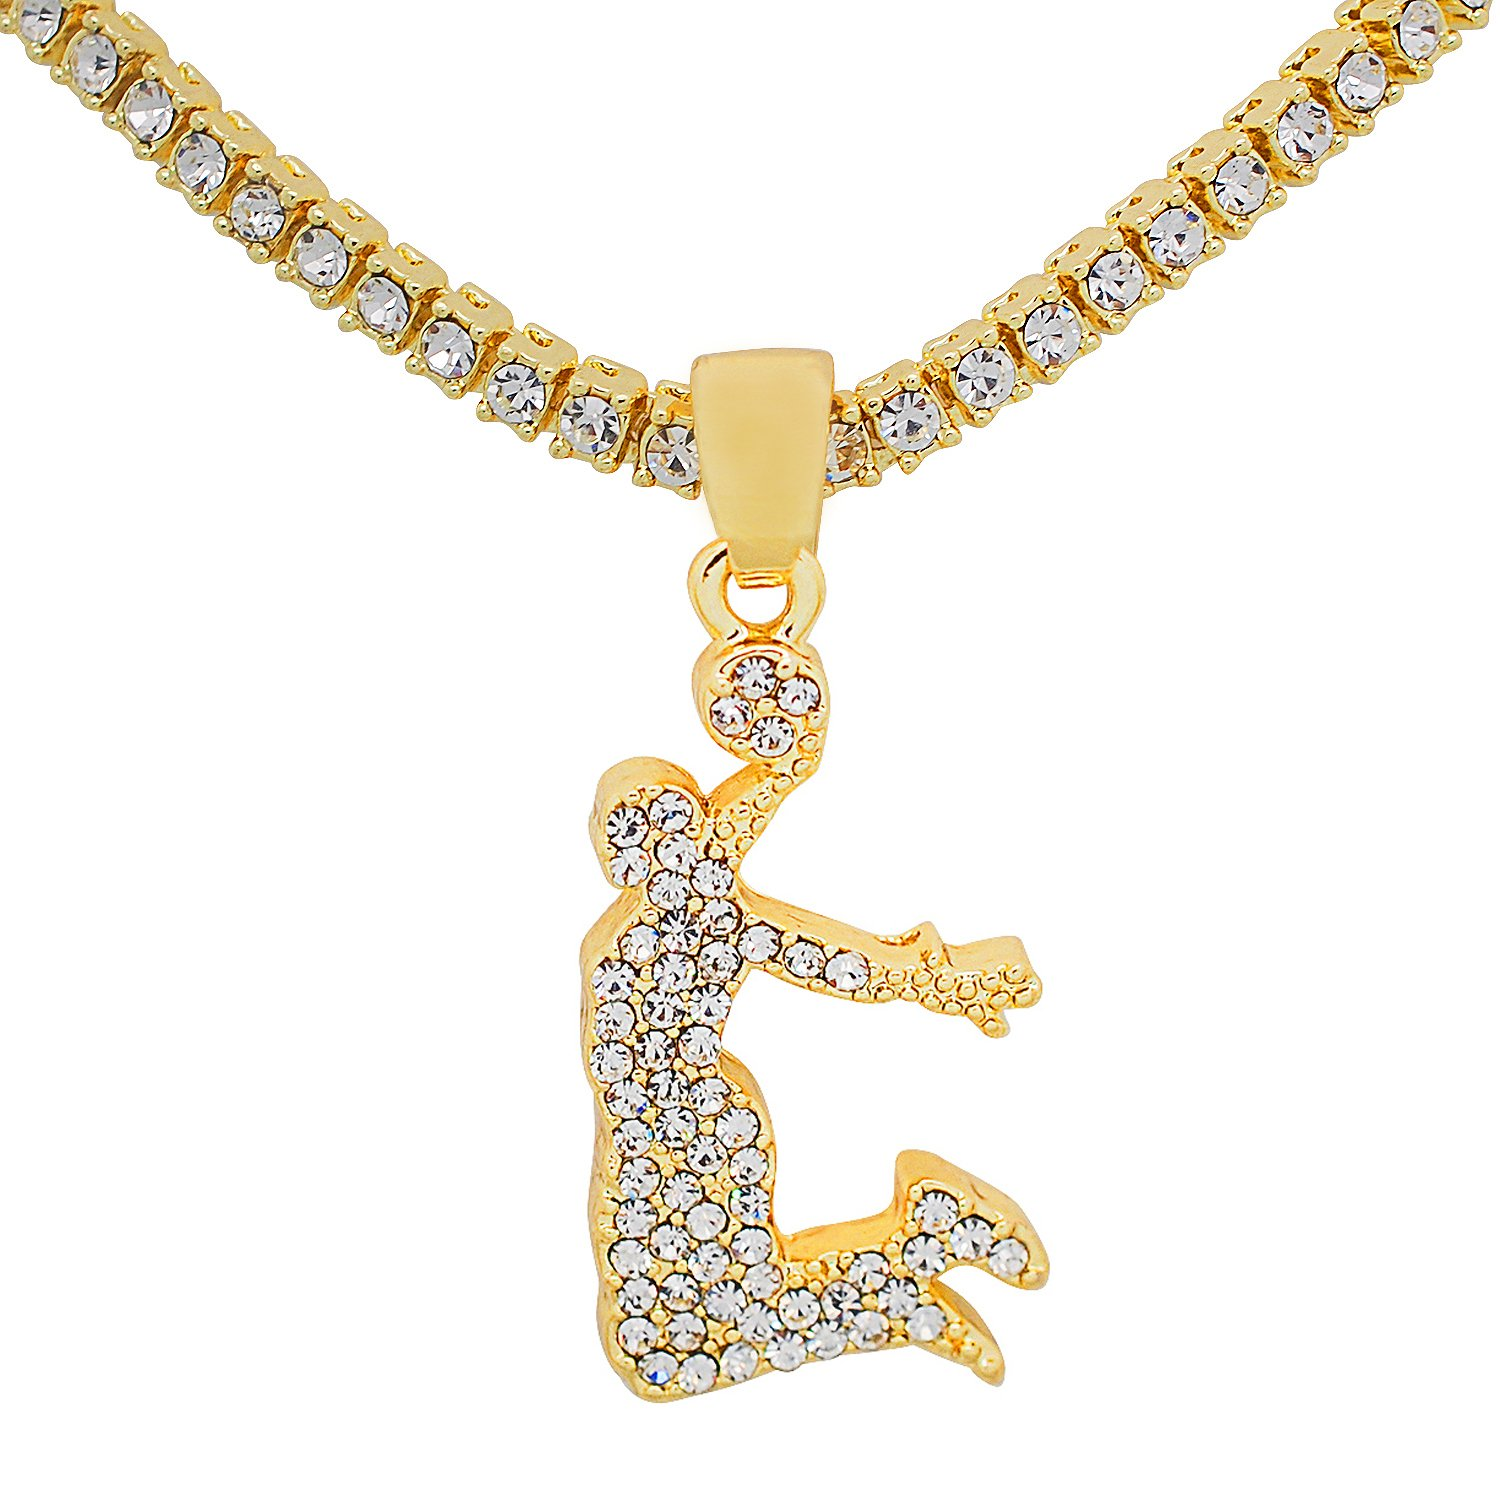 Yellow Gold-Tone Hip Hop Bling Simulated Crystal Slam Dunk Pendant with 20 Tennis Chain and 24 Rope Chain